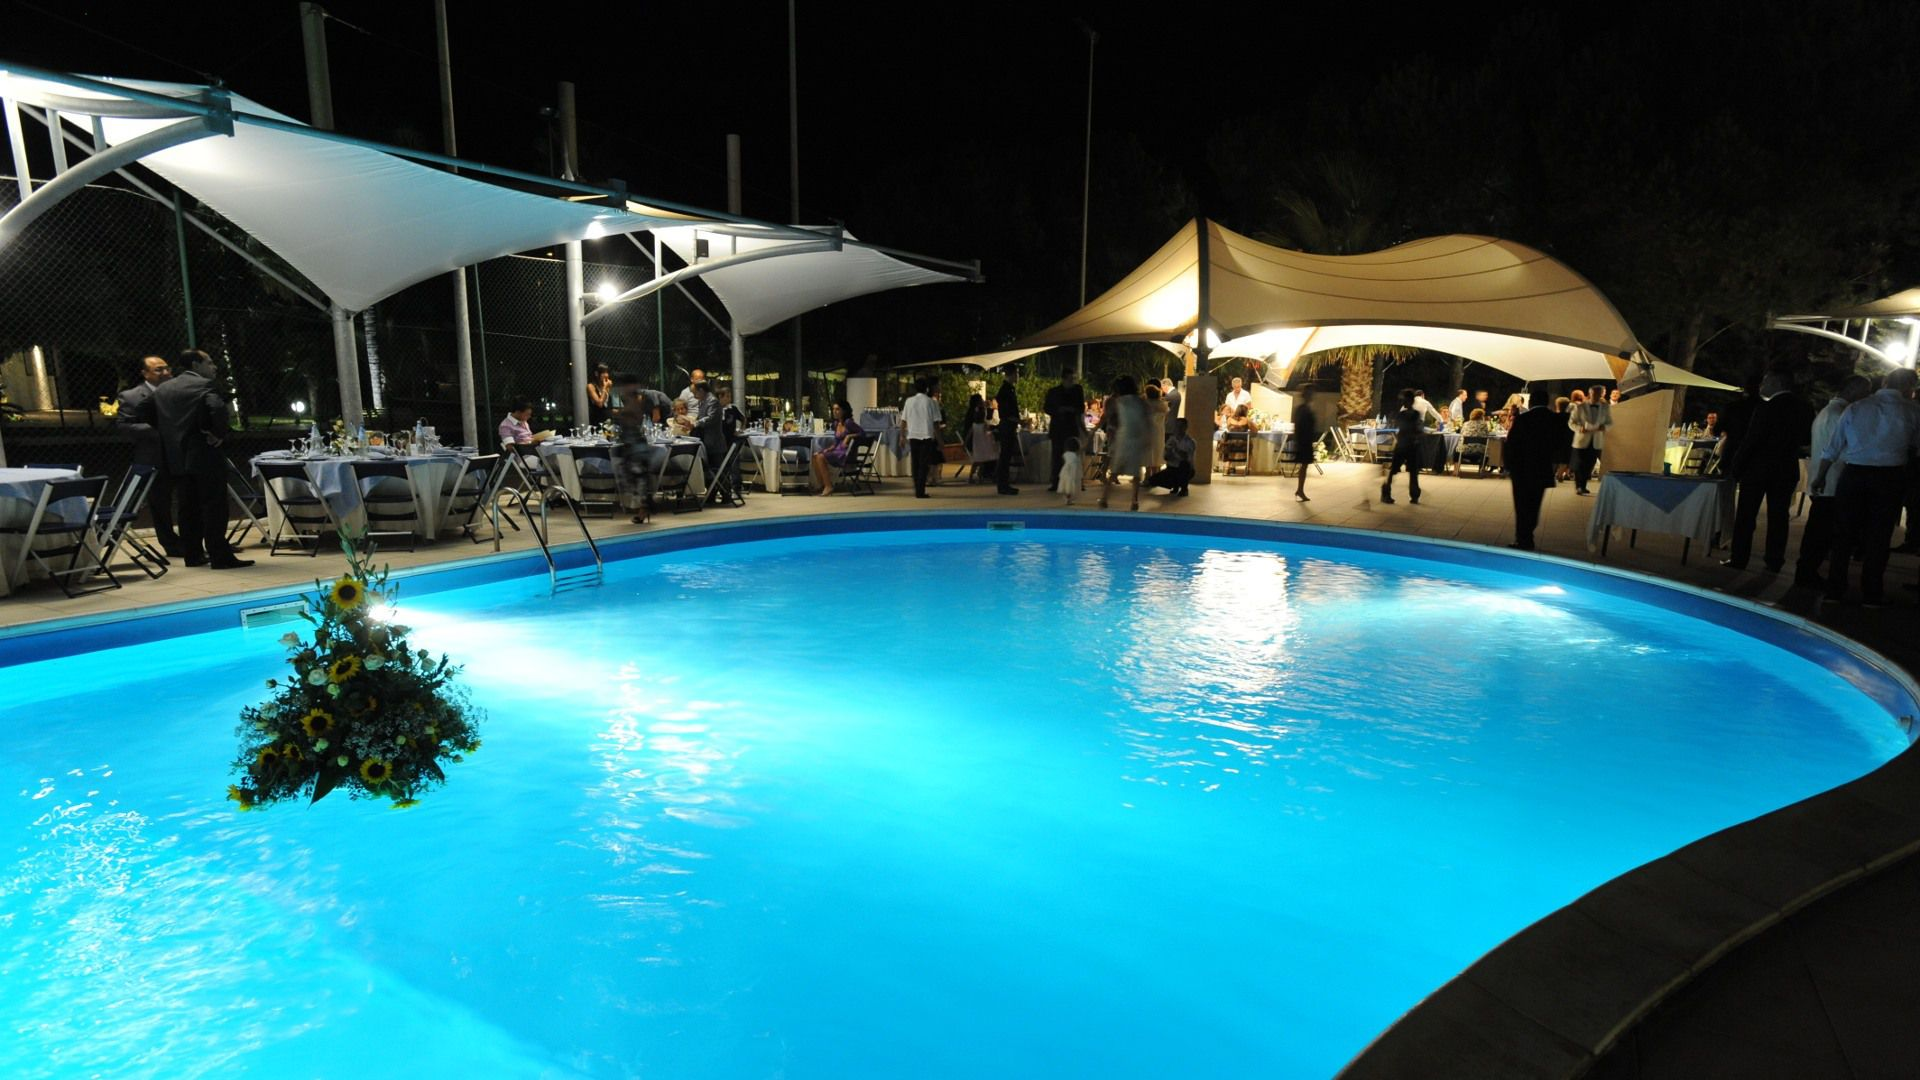 Cena a bordo piscina con musica dal vivo villa orchidea for Musica piscina